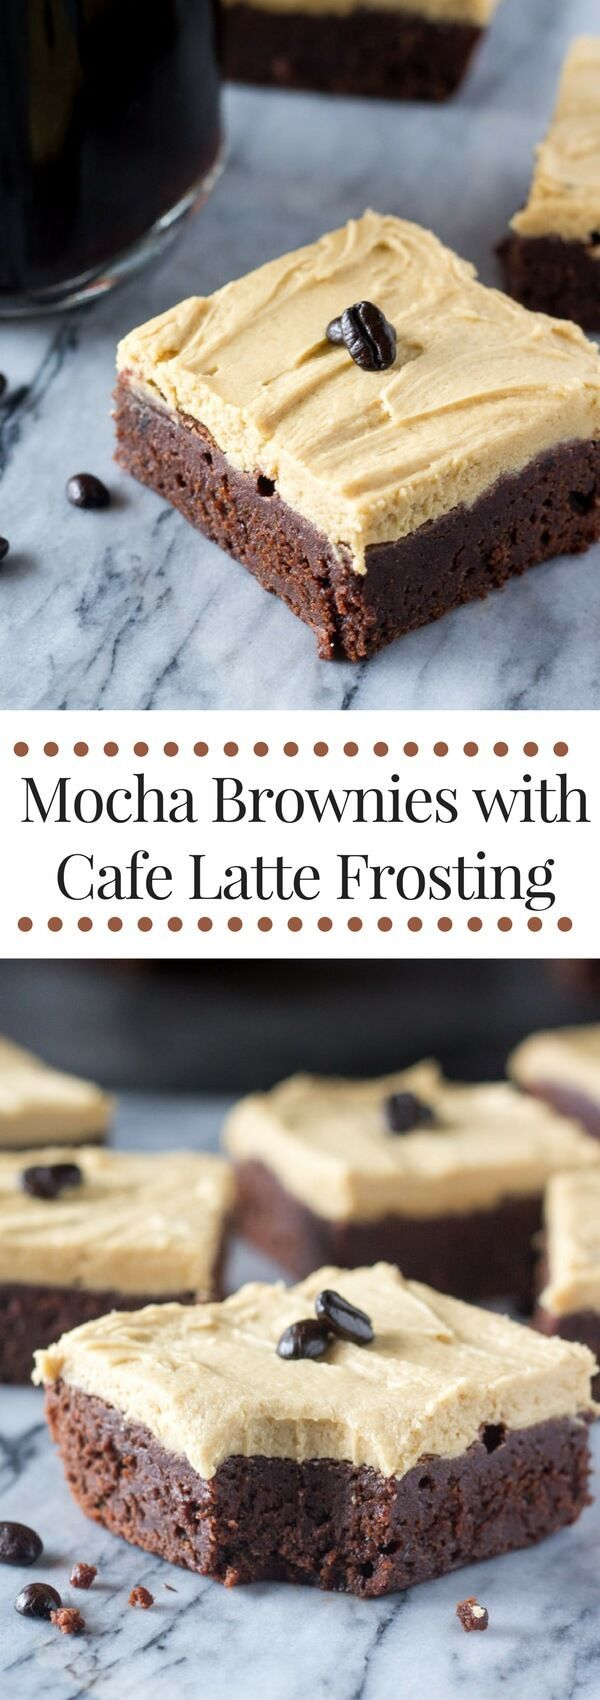 Mocha Brownies with Cafe Latte Frosting. These fudgy brownies are infused with coffee and topped with cream coffee flavored frosting.